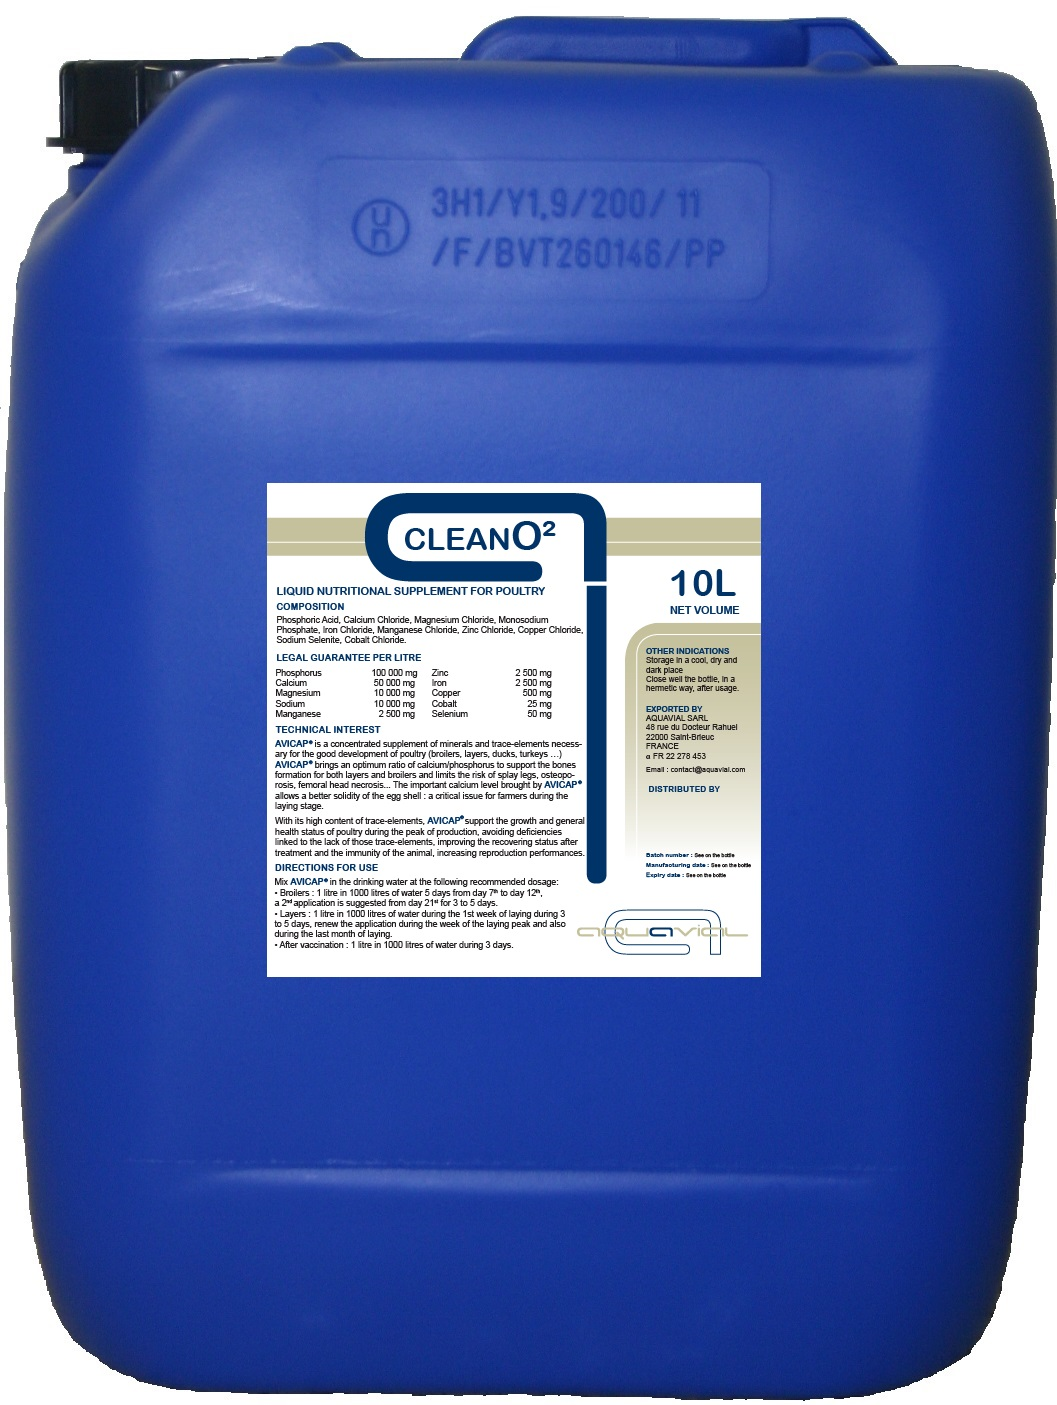 CleanO2- Aquavial Pipe-cleaning & disinfectant